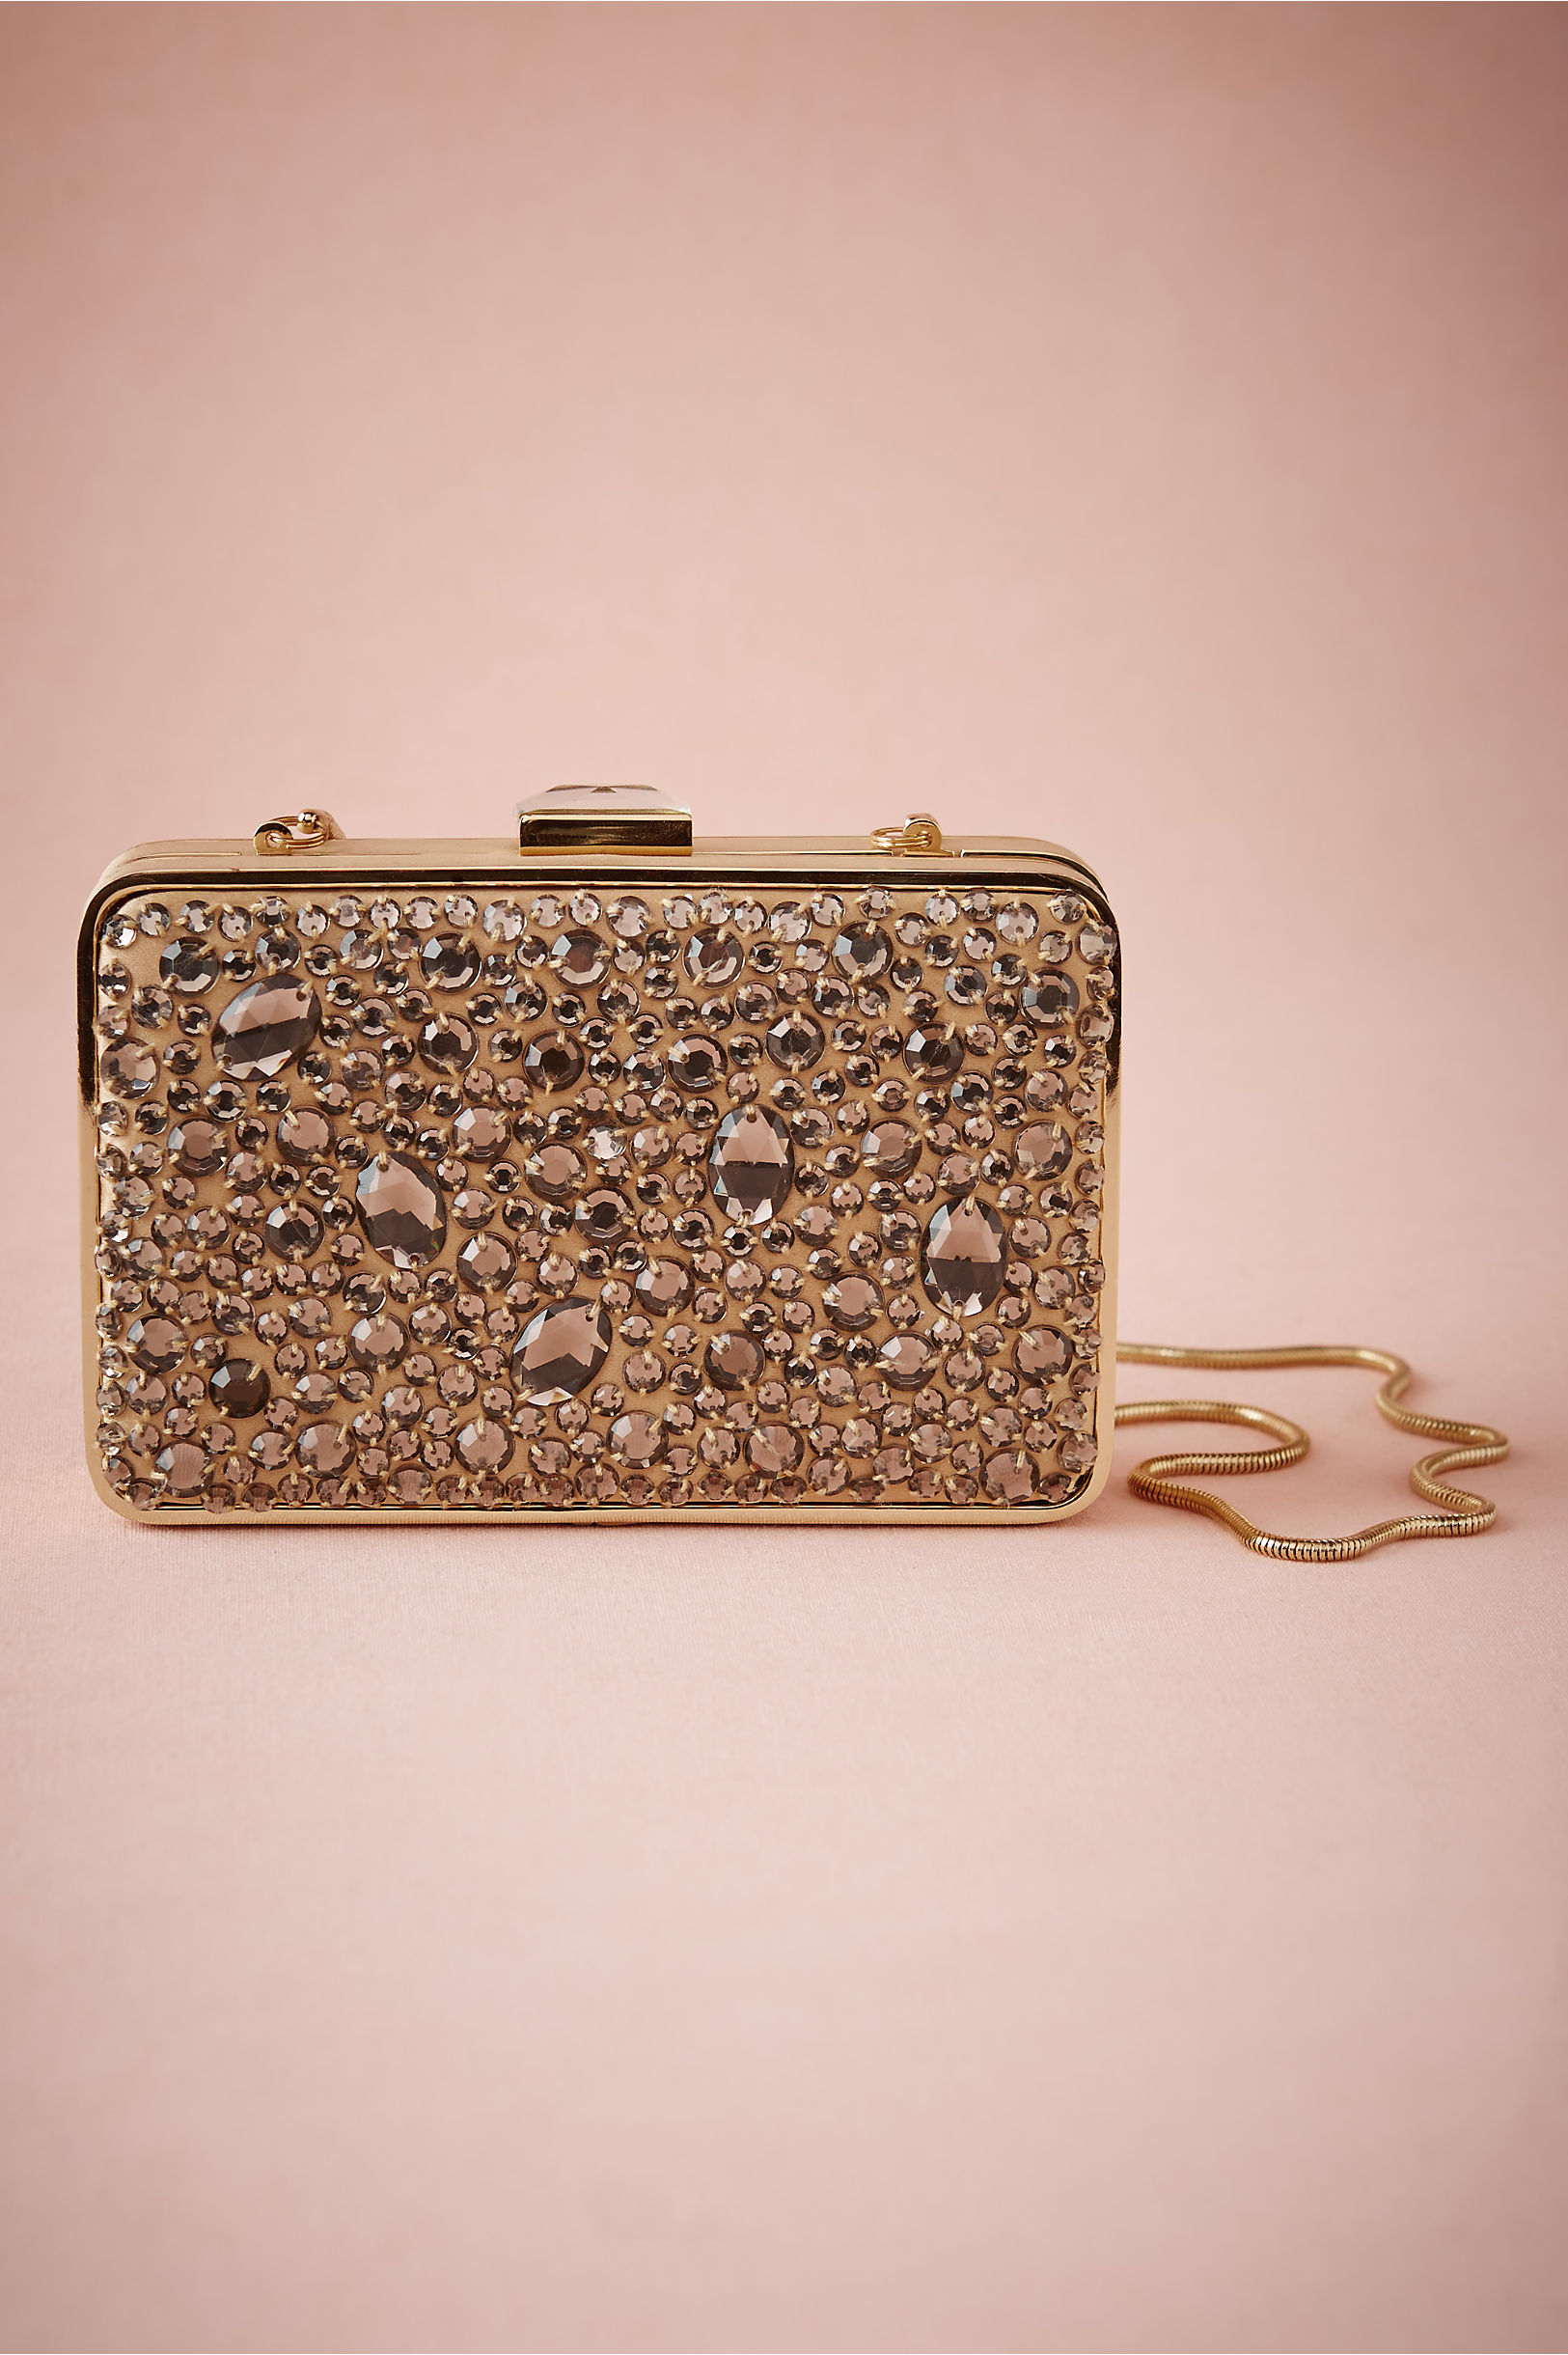 Ambre Box Clutch in Shoes & Accessories | BHLDN